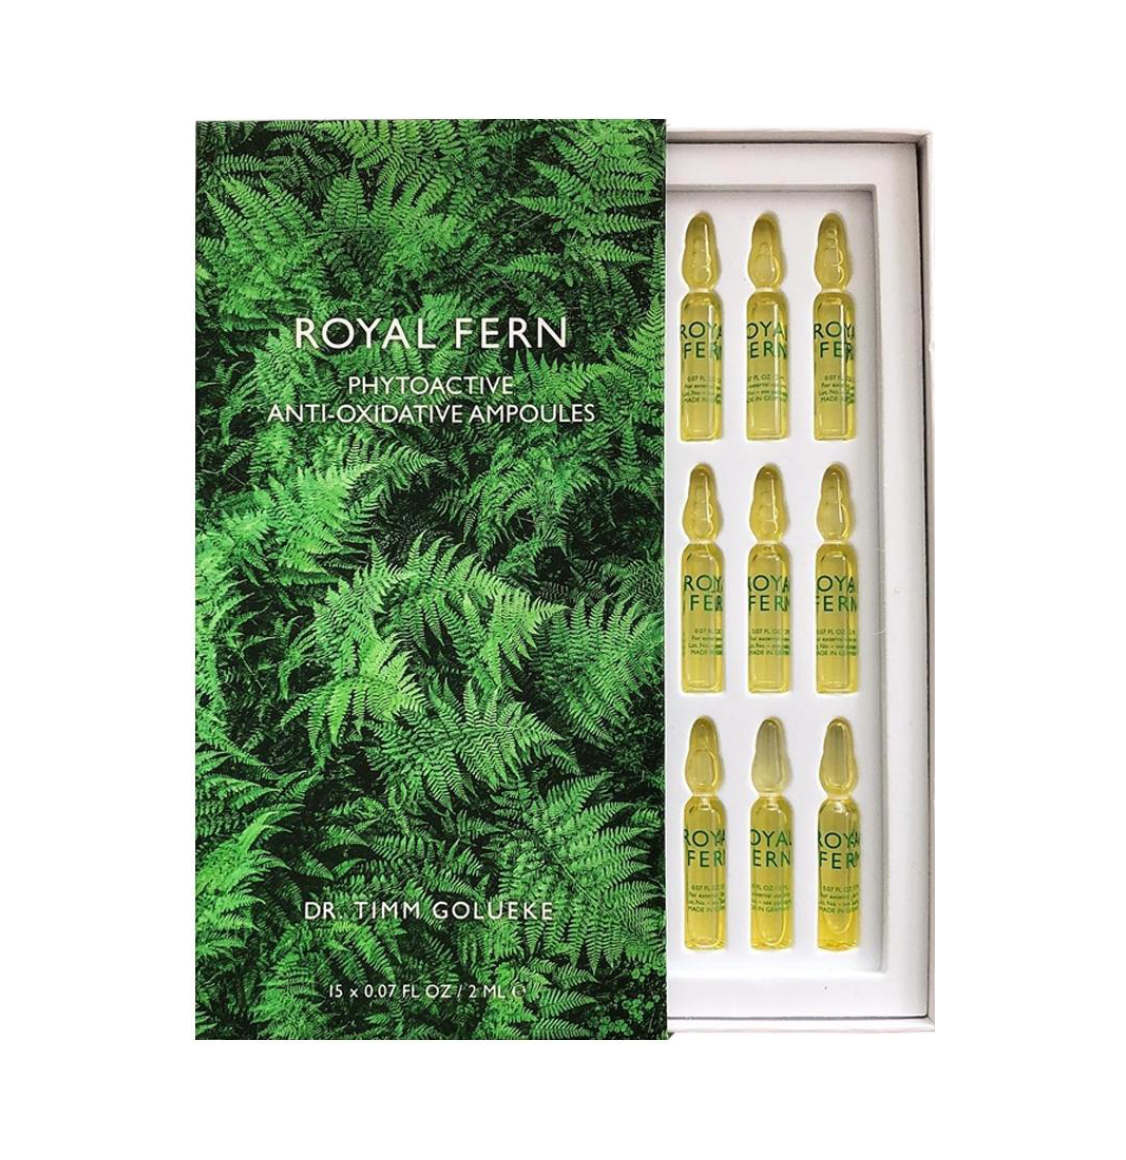 Royal Fern Phytoactive Antioxidative Ampoules 15 x 2ml